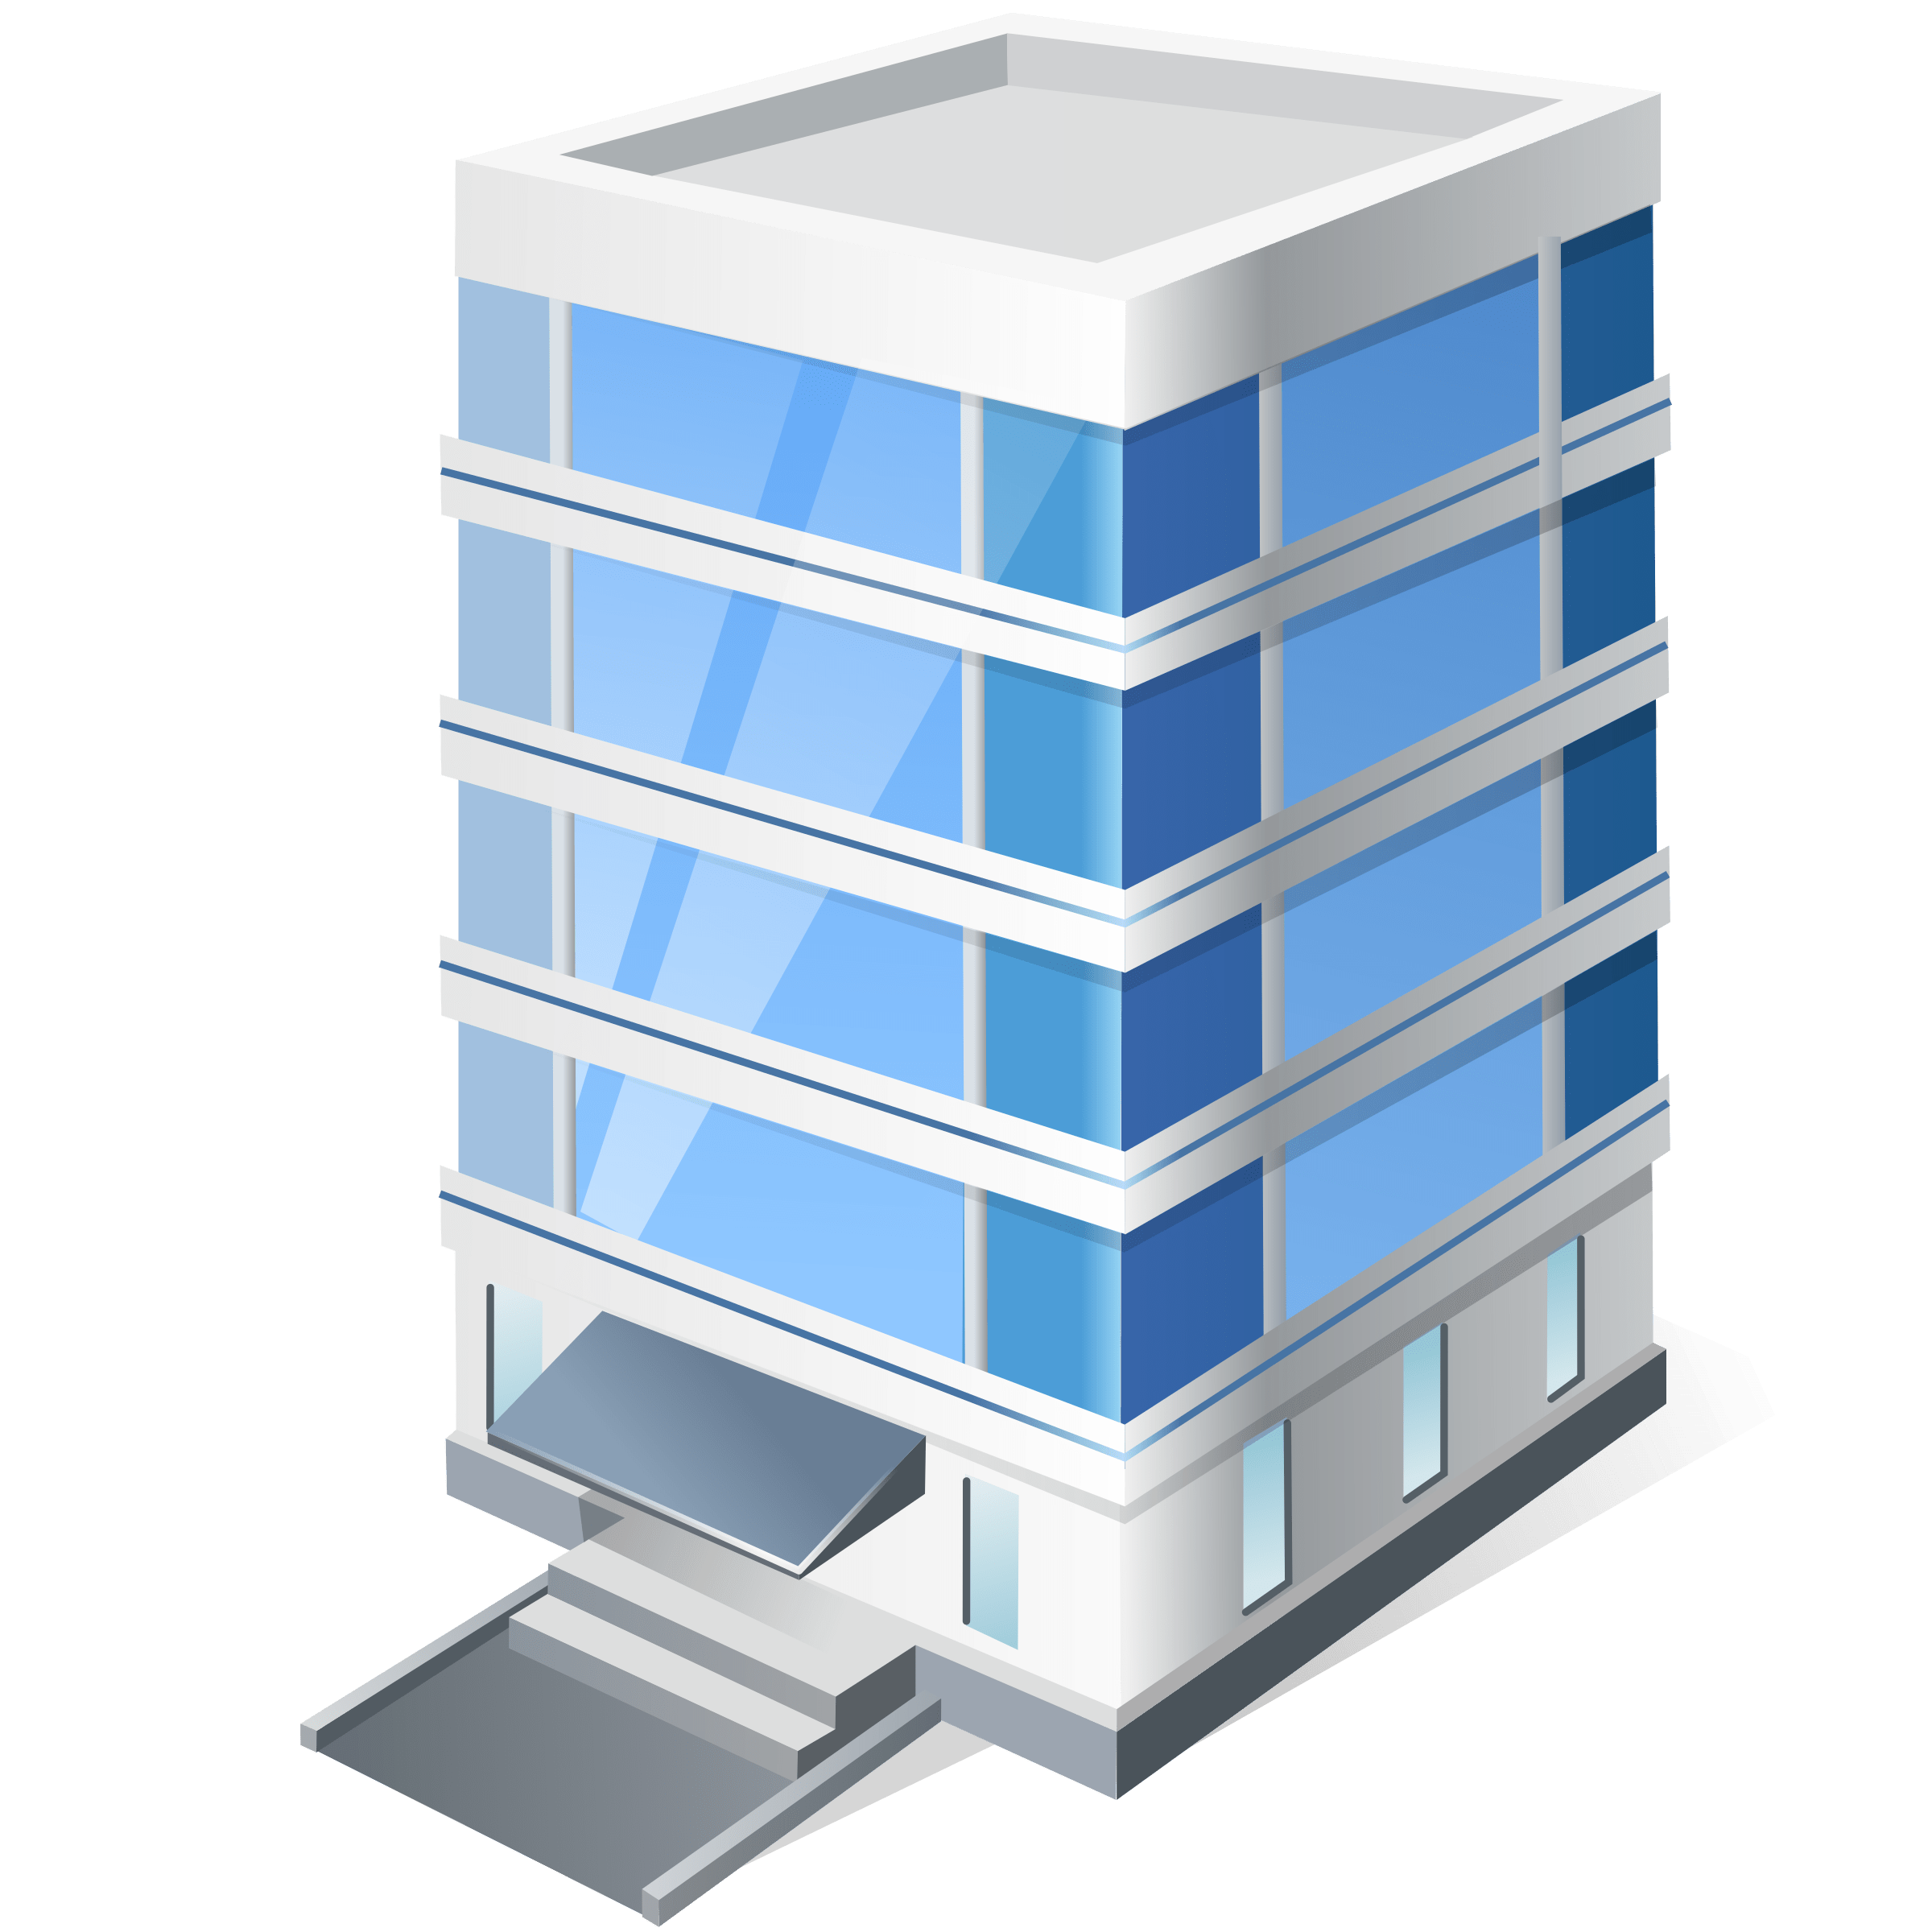 Office building png stickpng. Blocks clipart transparent background